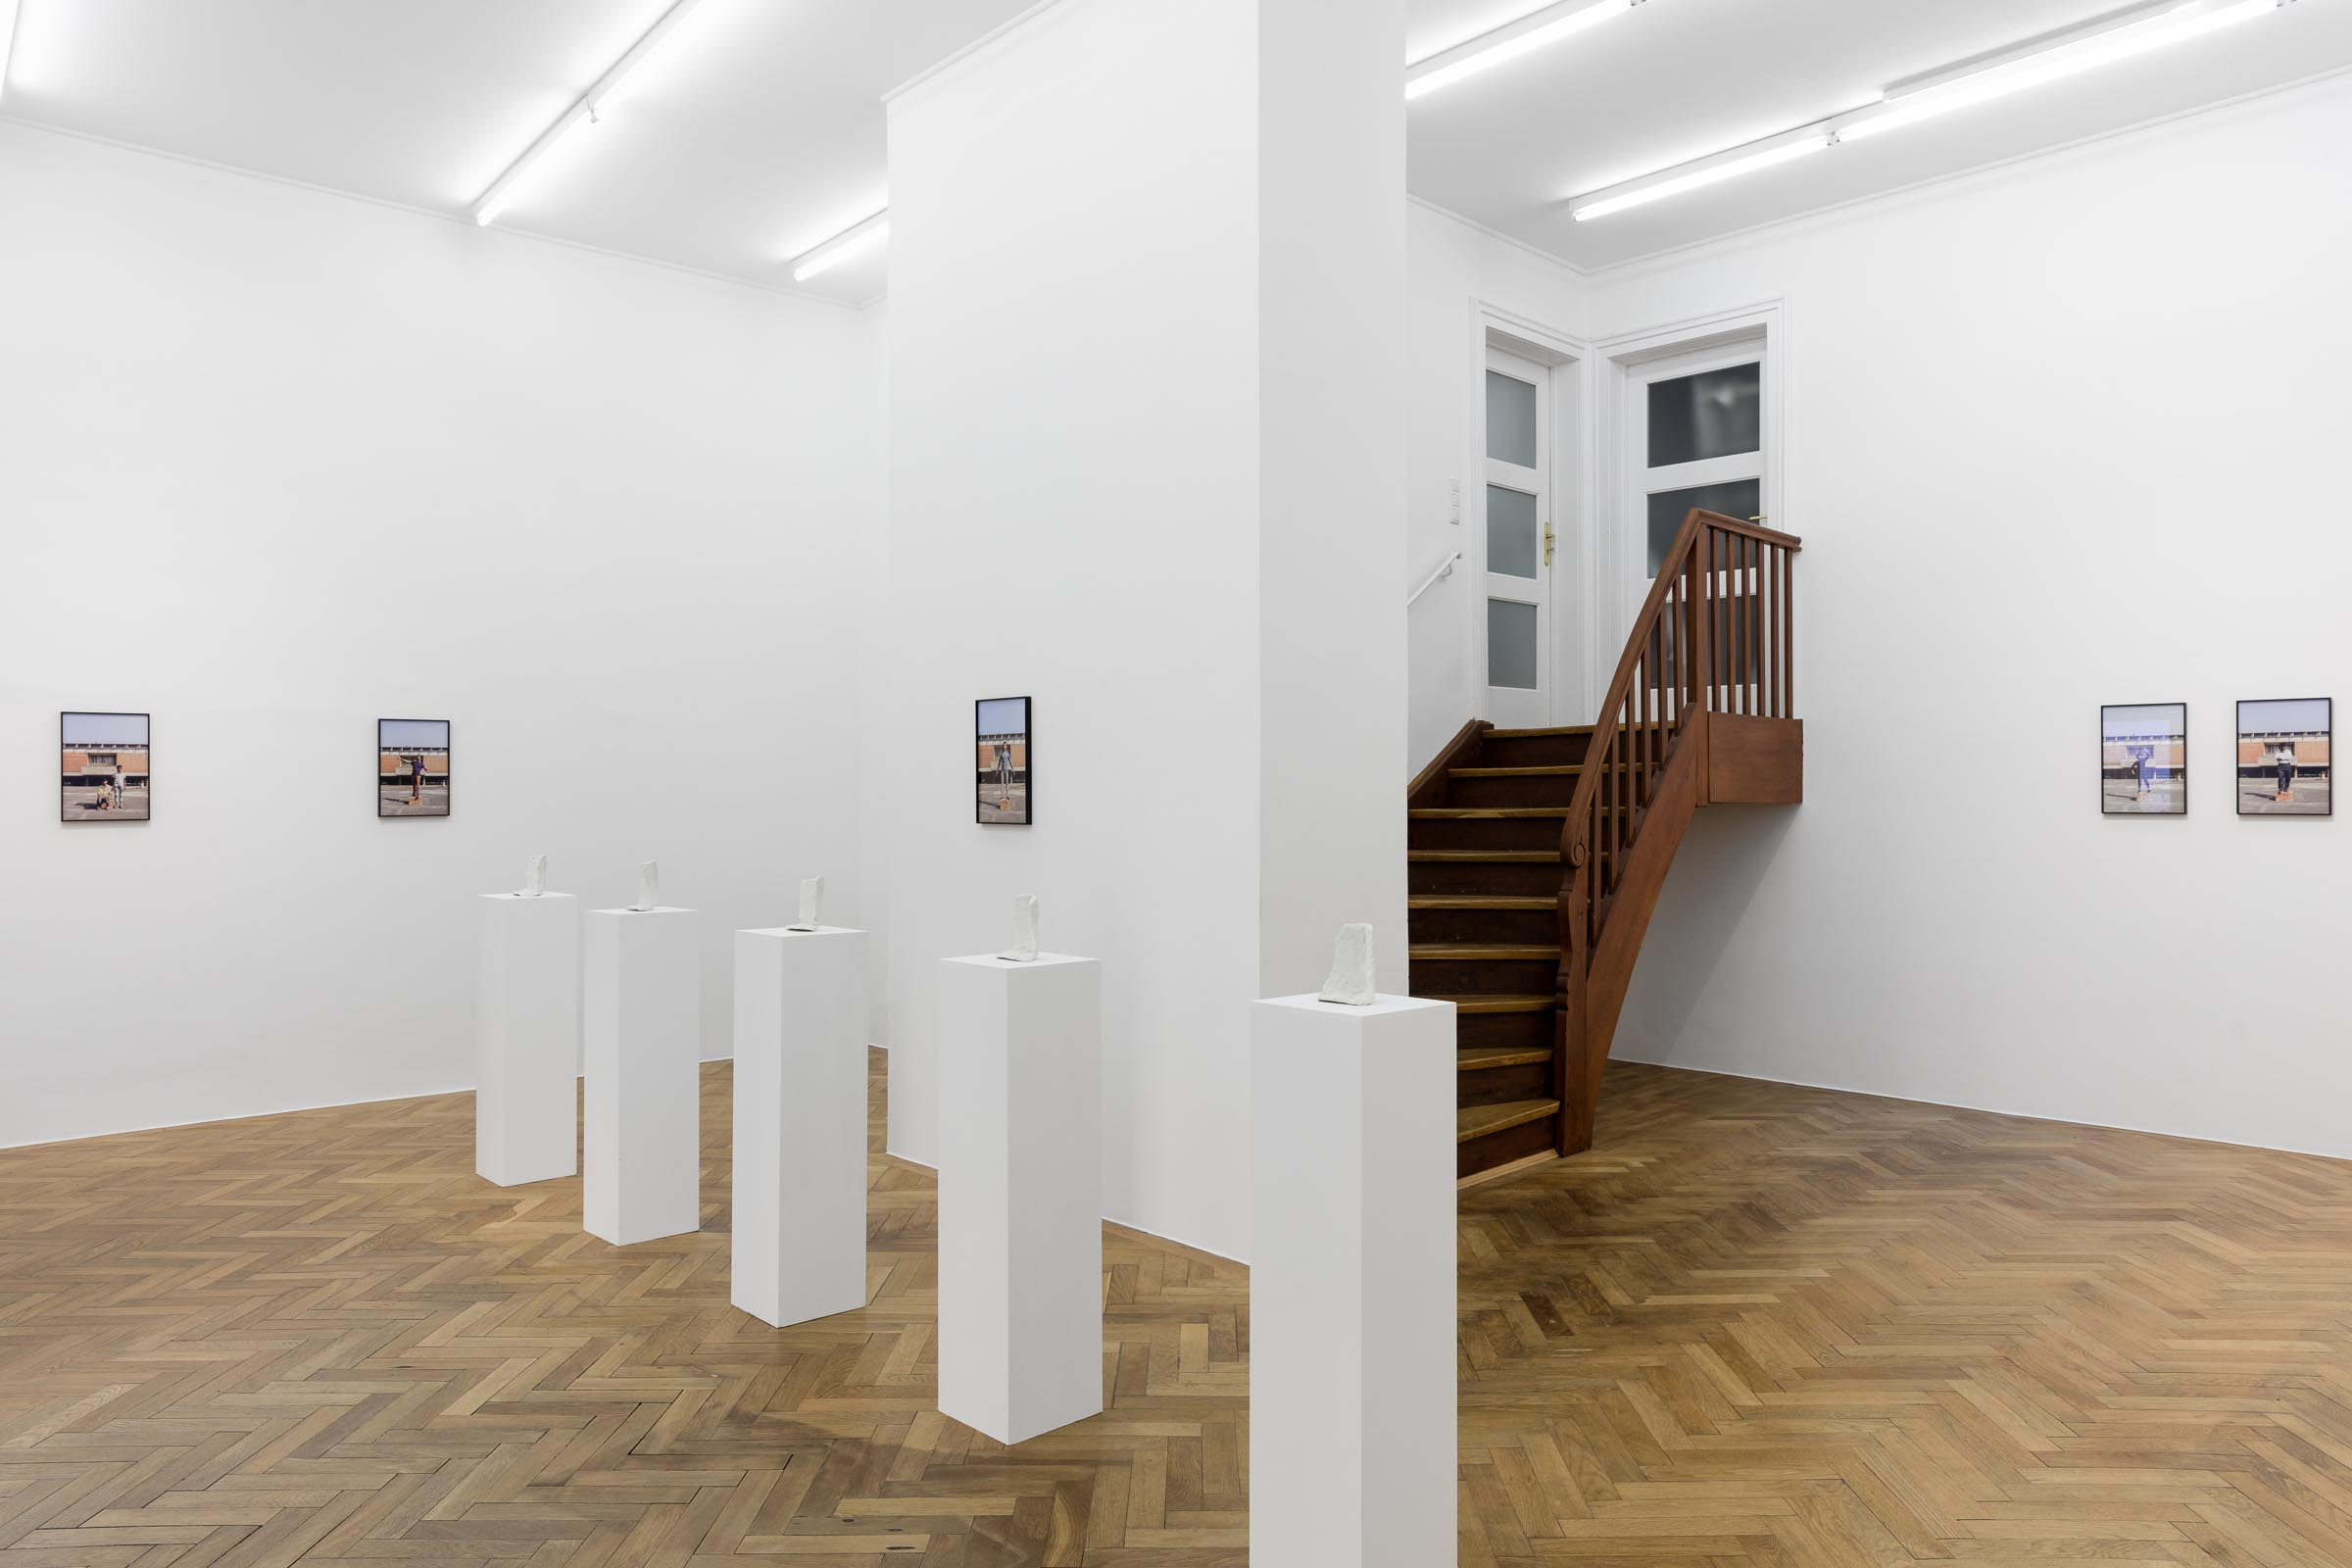 EXHIBITION VIEW Thomas Geiger: The Great Relief March 29 - May 11, 2019